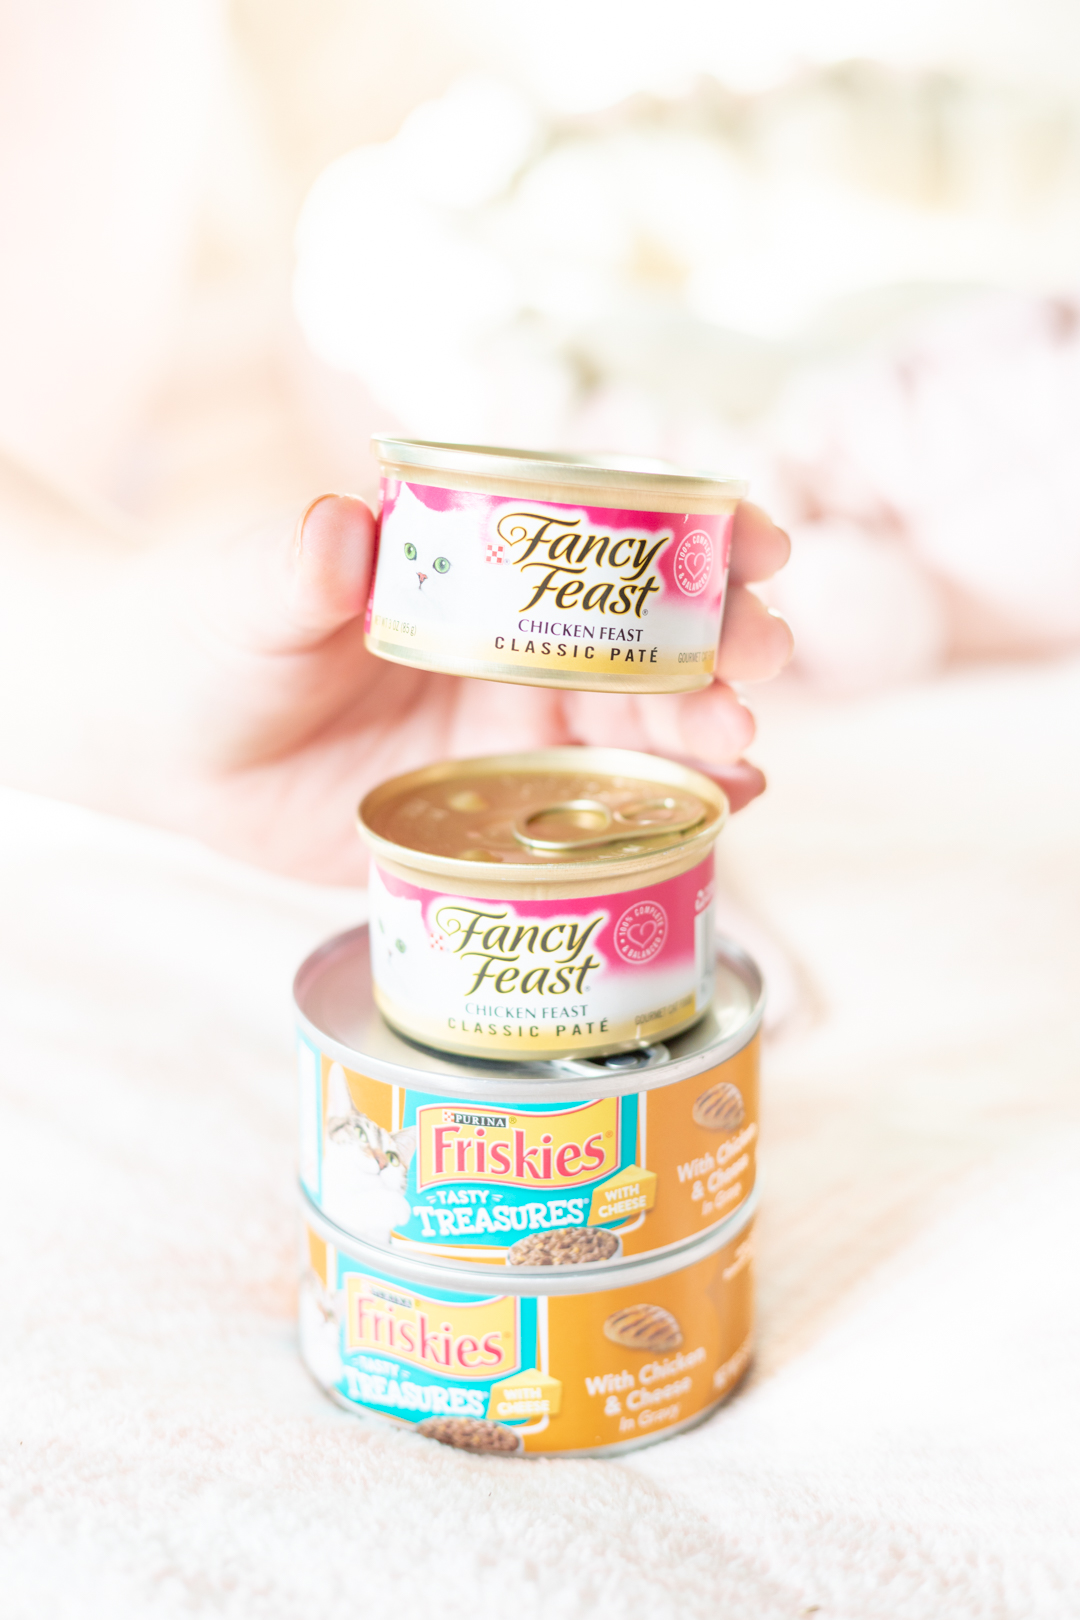 Fancy Feast and Friskies canned food